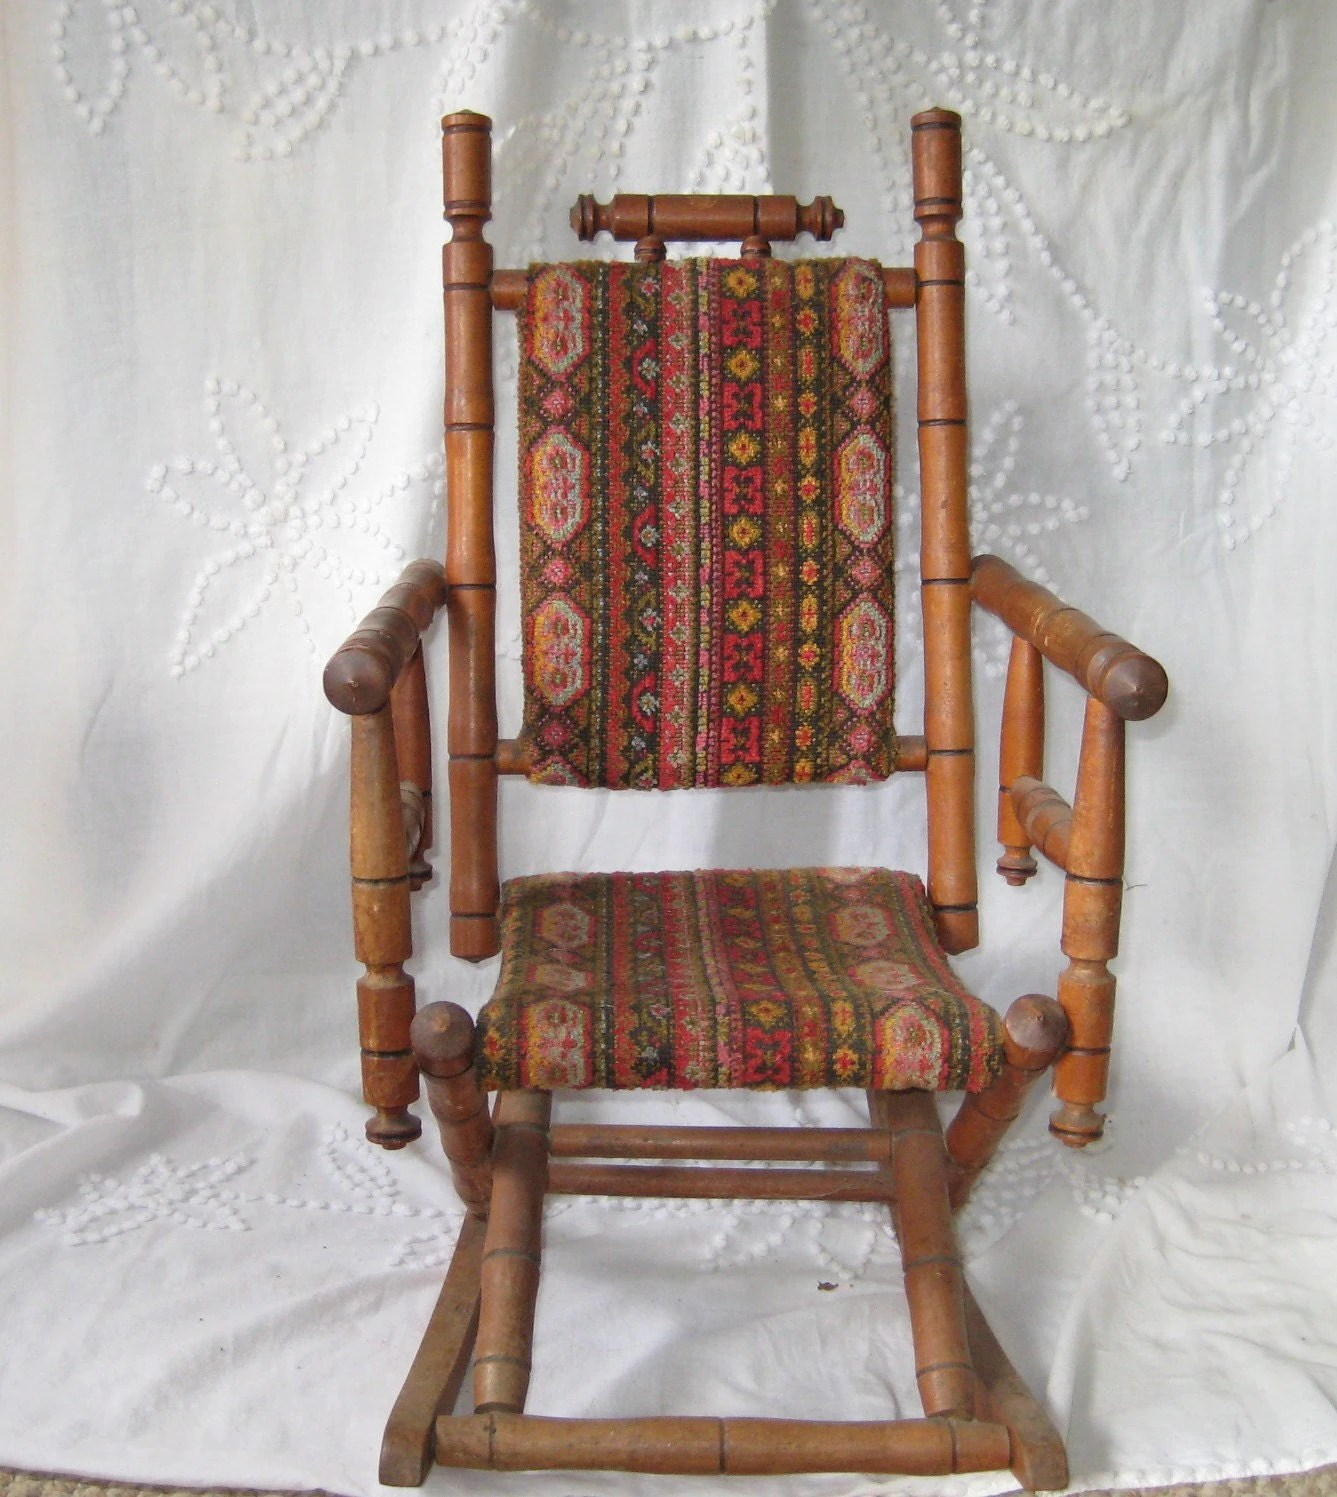 Antique Wooden Chair Antique Rocking Chair Childs Rocking Chair Upholstered